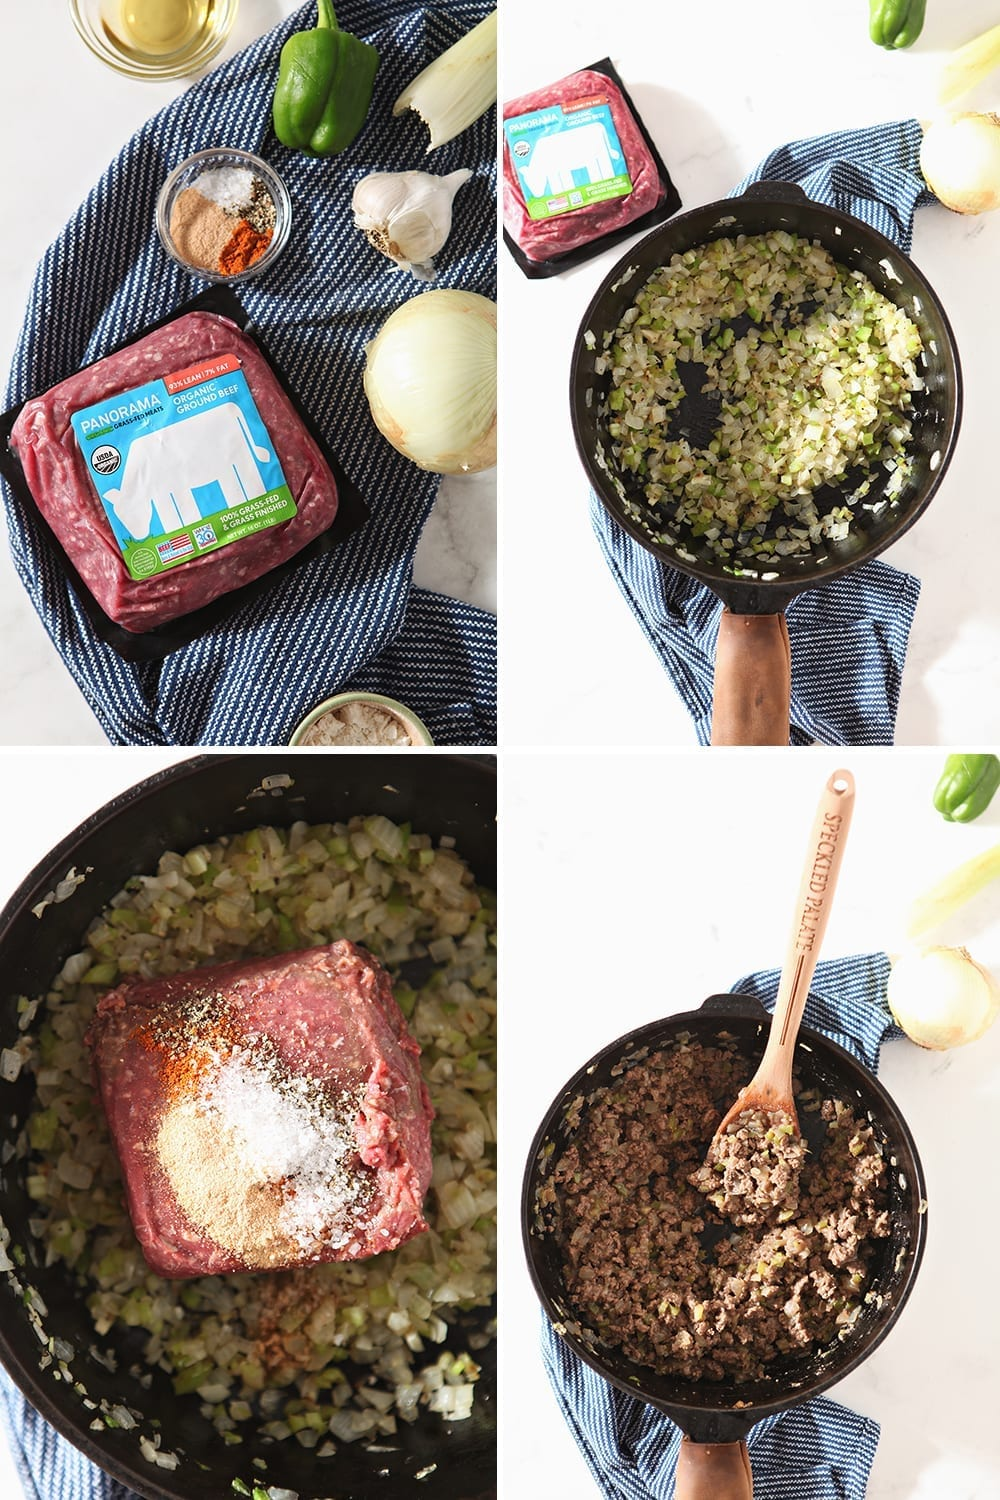 Collage of how to make the meat filling, showing sauteeing veggies and browning the meat